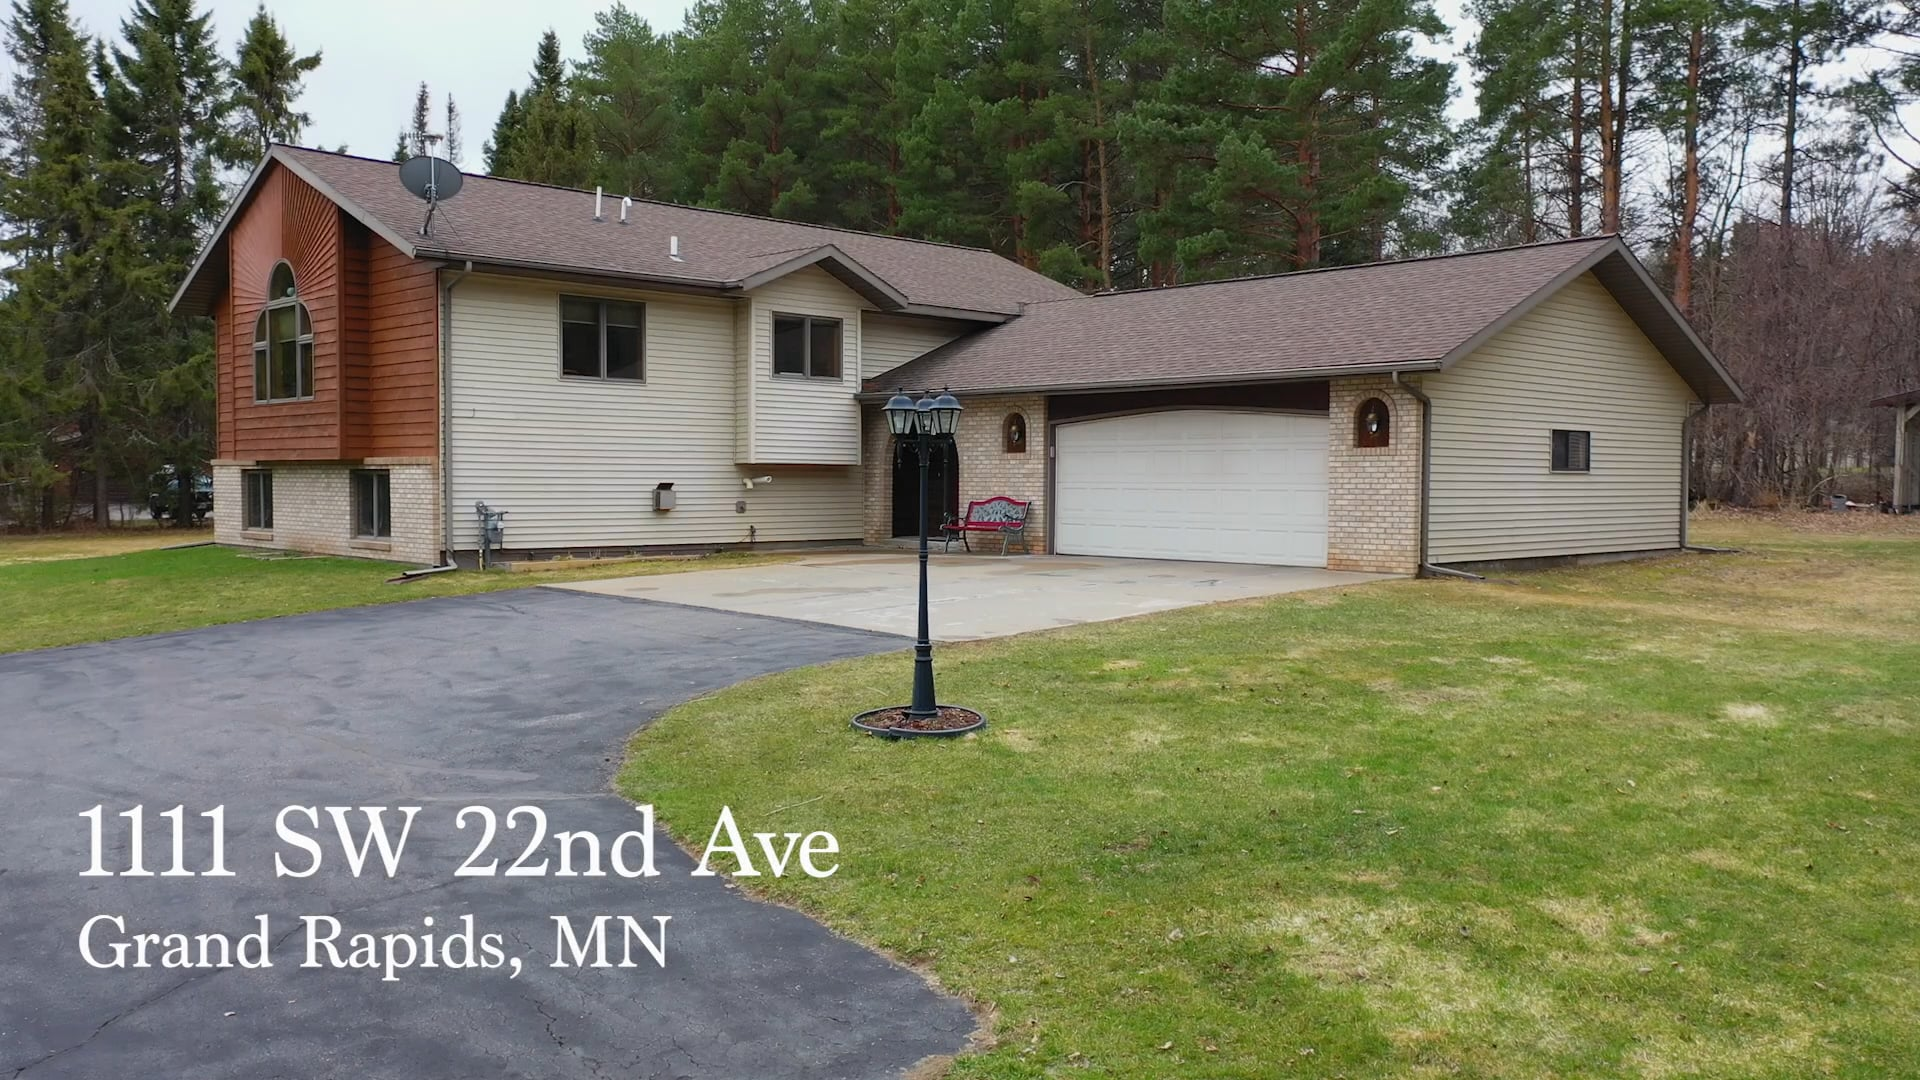 1111 SW 22nd Ave Grand Rapids, MN